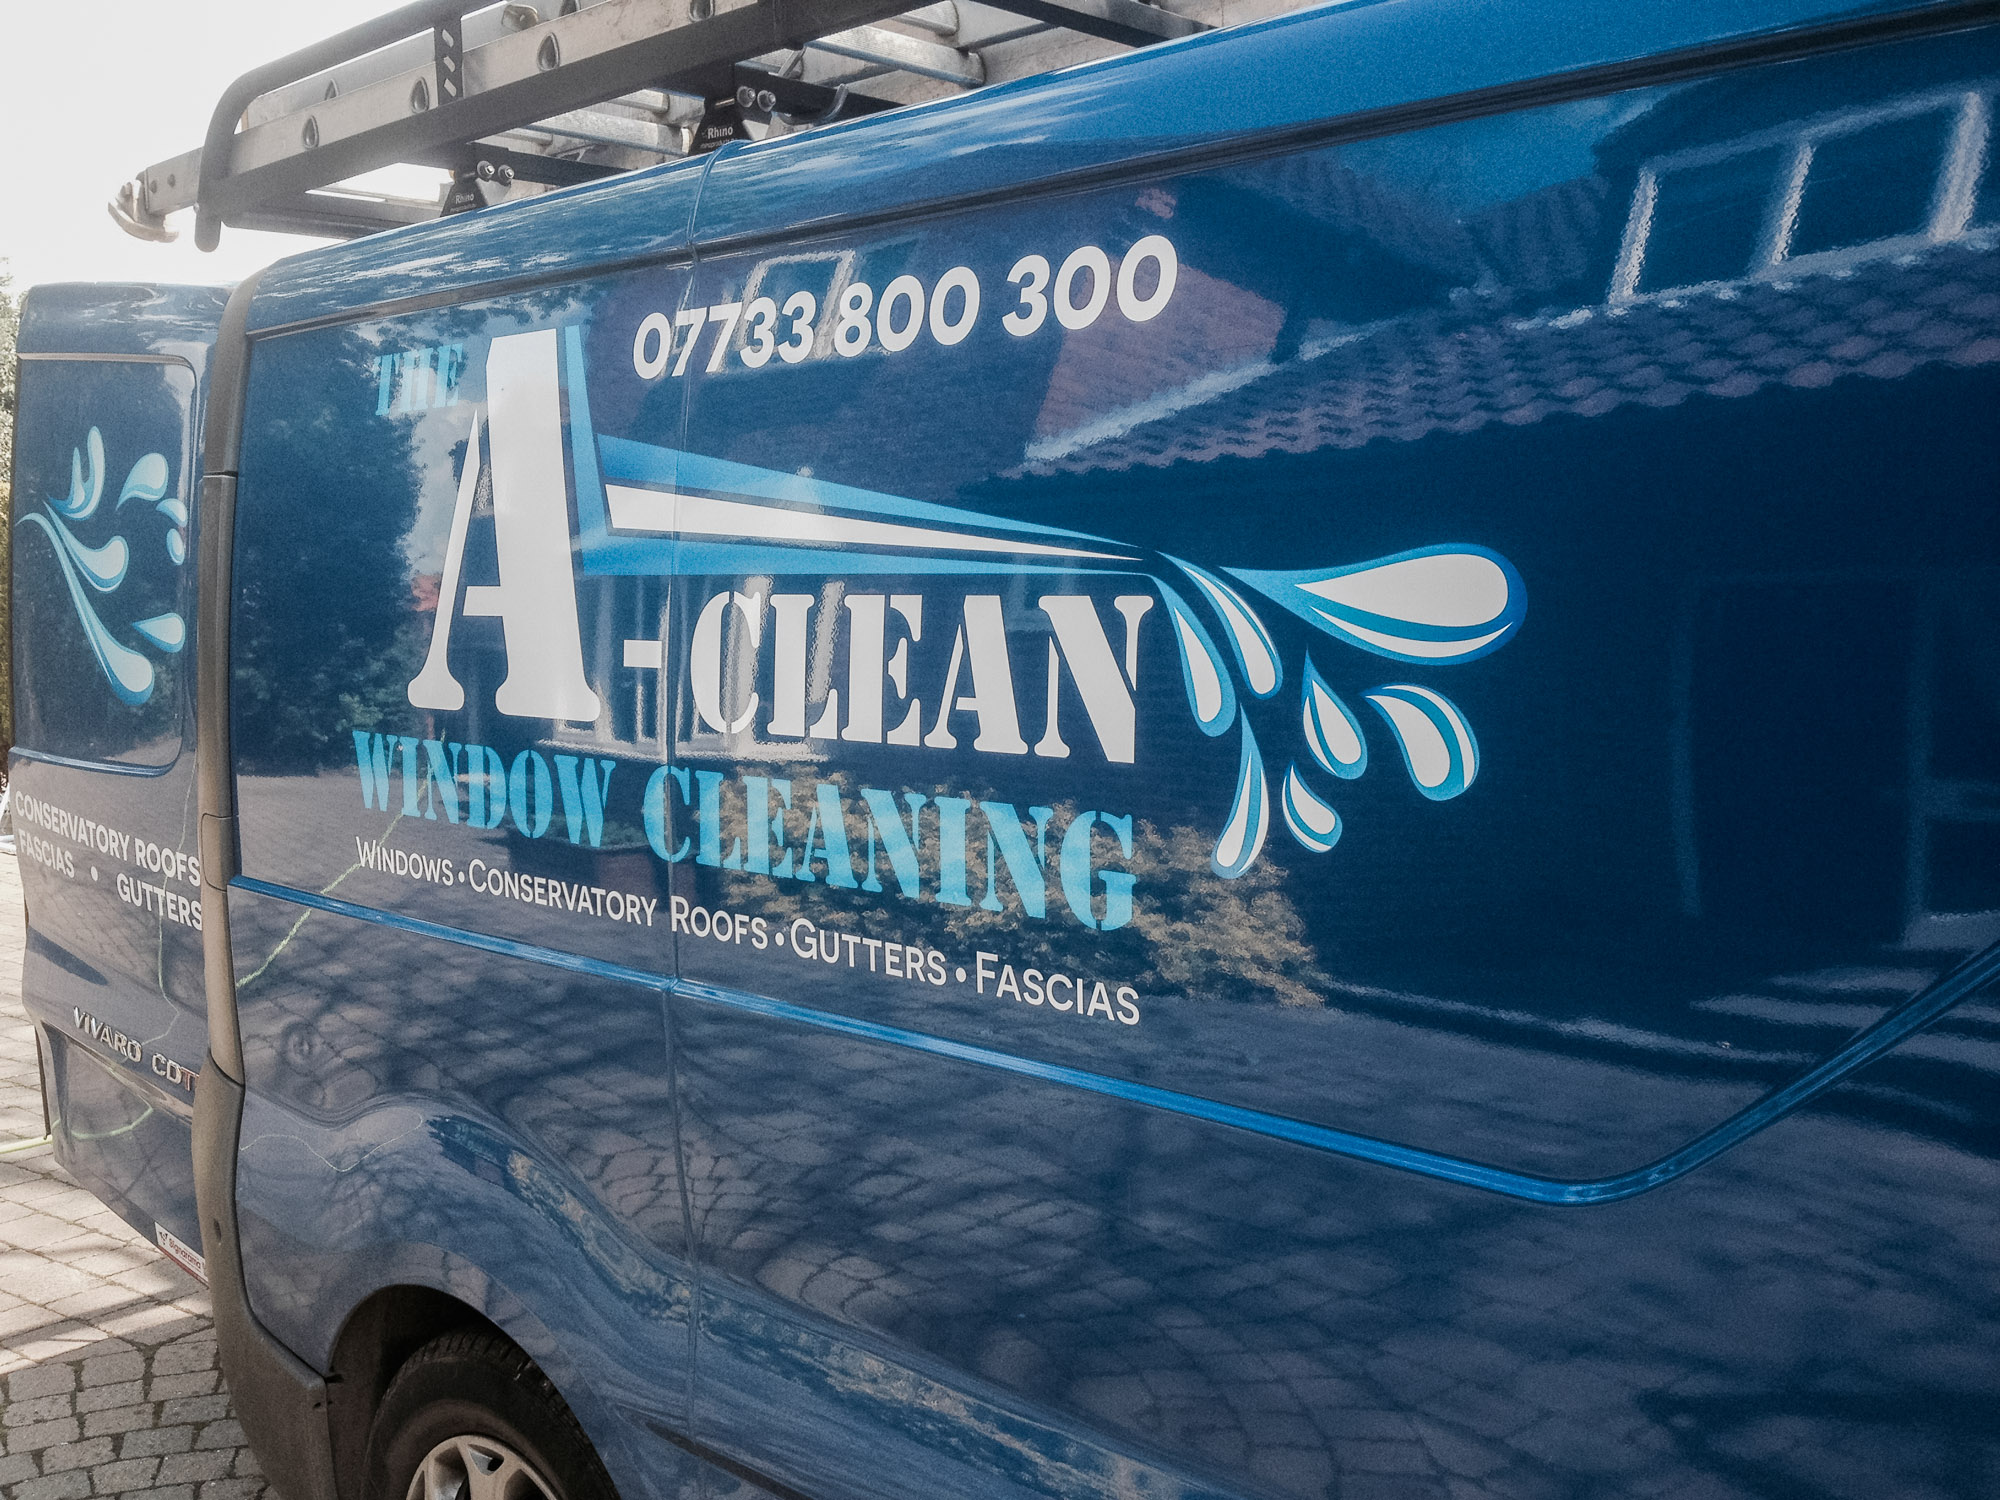 Professional Window & Gutter Cleaning Service In Yorkshire